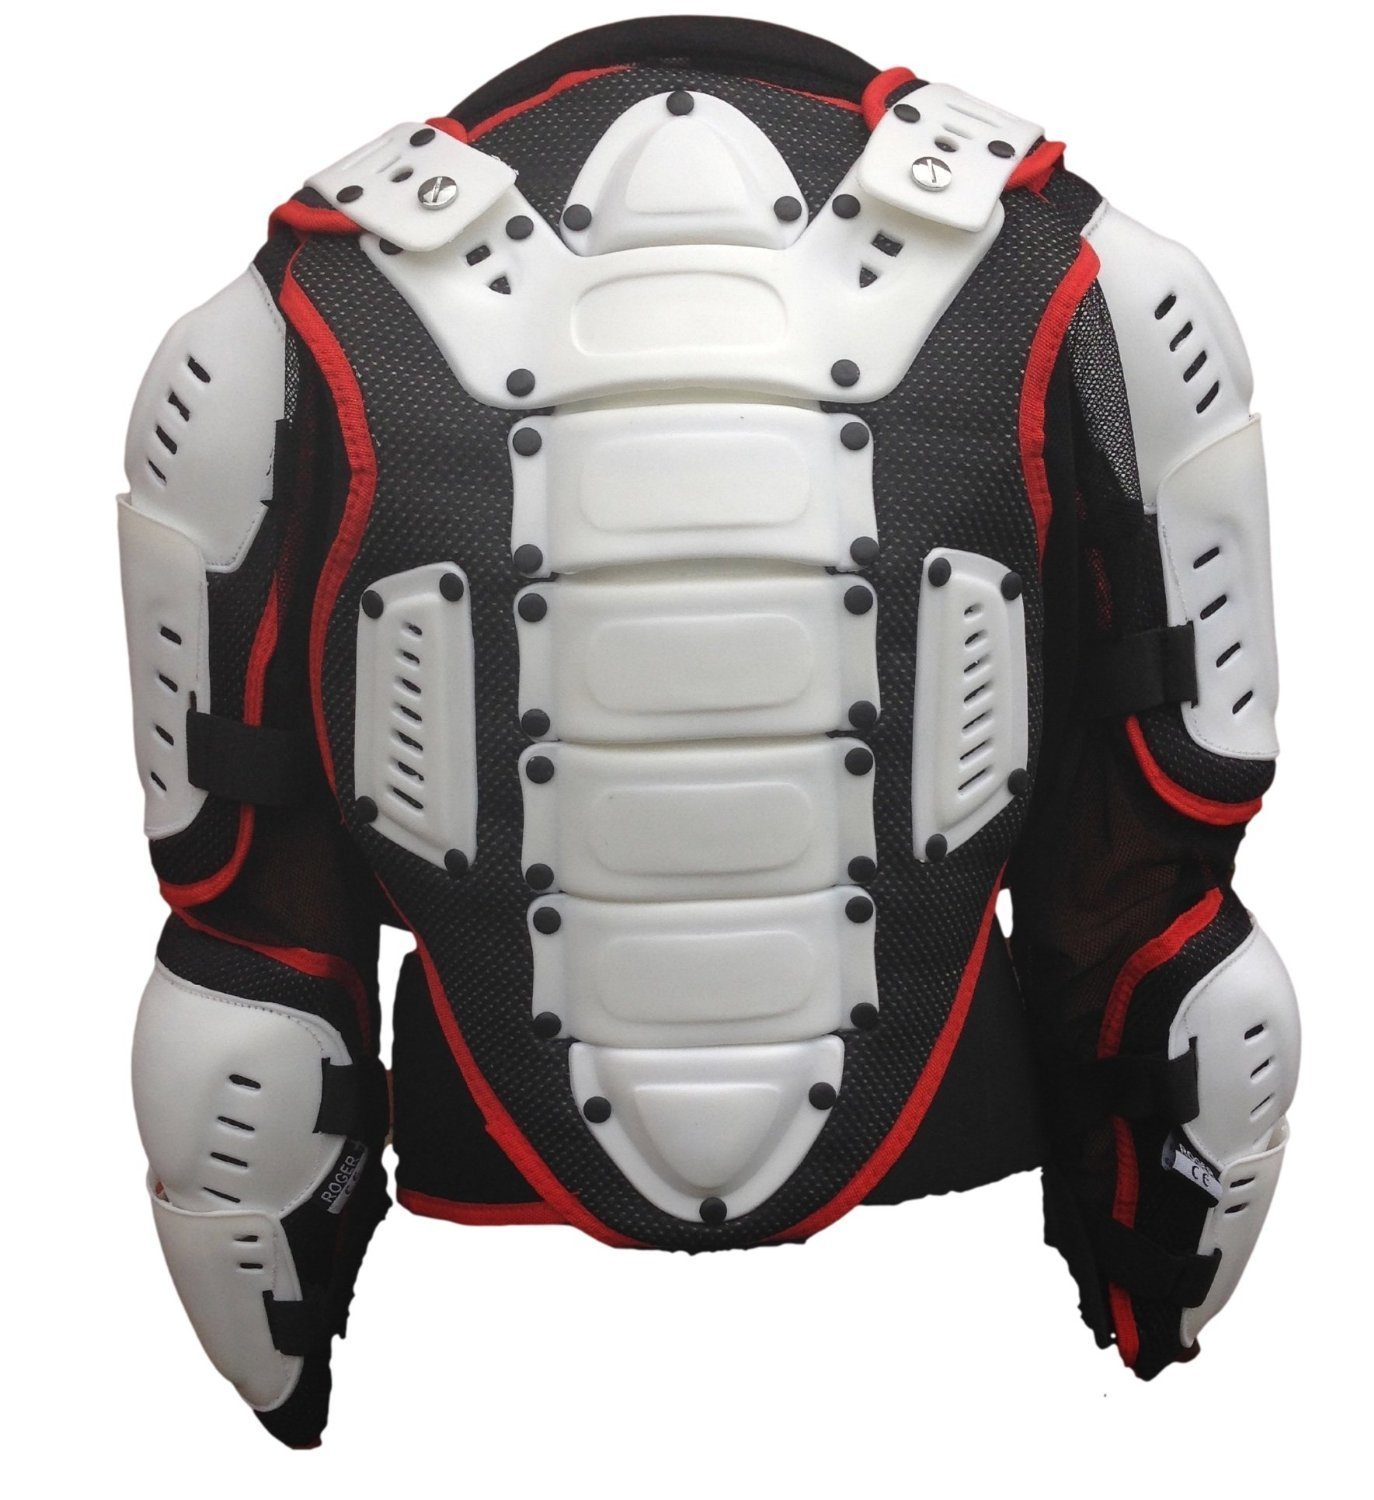 10 Years Kids Mx Body Armour Quad Pit Bike Spine Chest Safety Protective Jacket White//Red